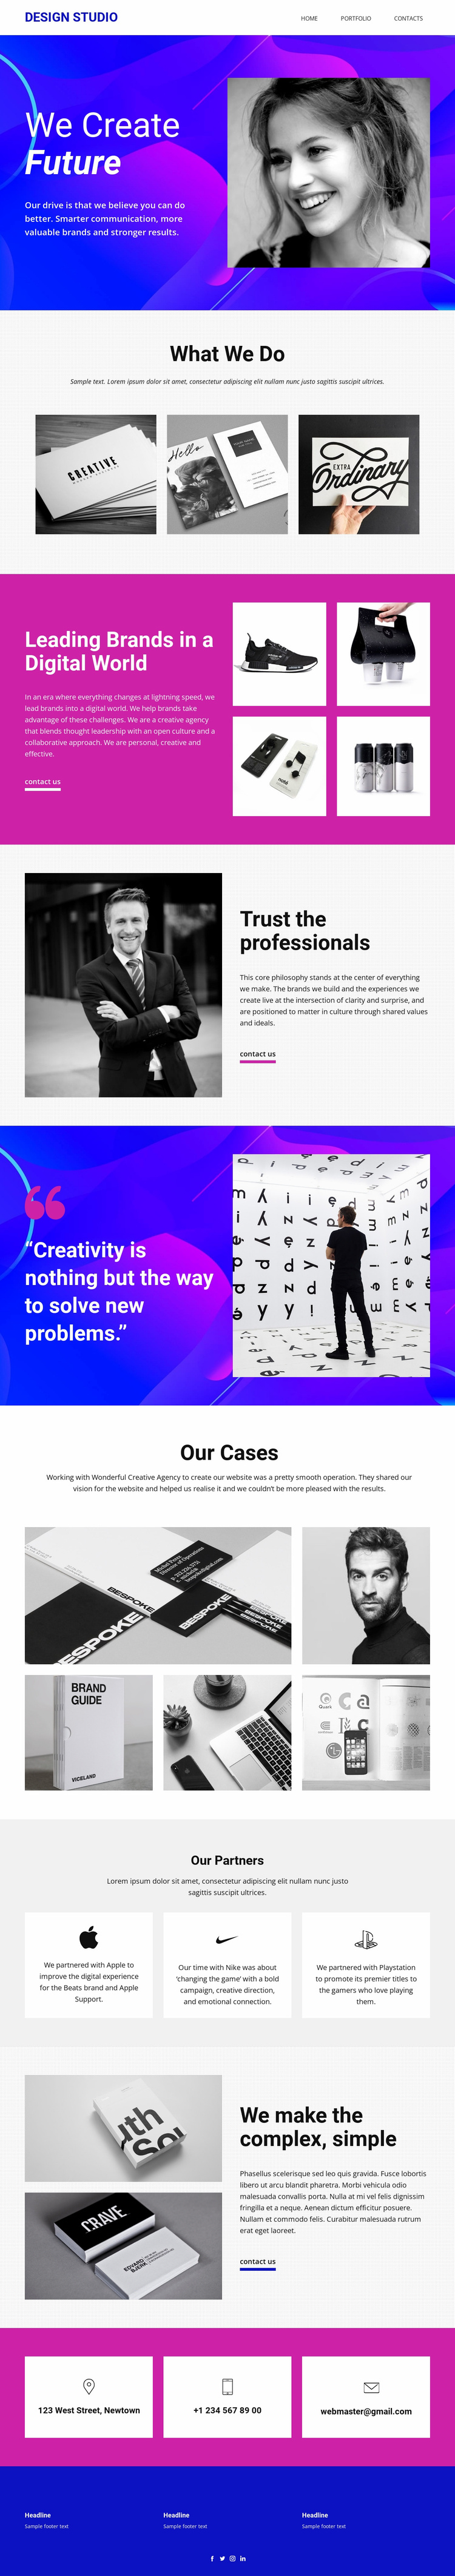 We develop the brand's core Landing Page